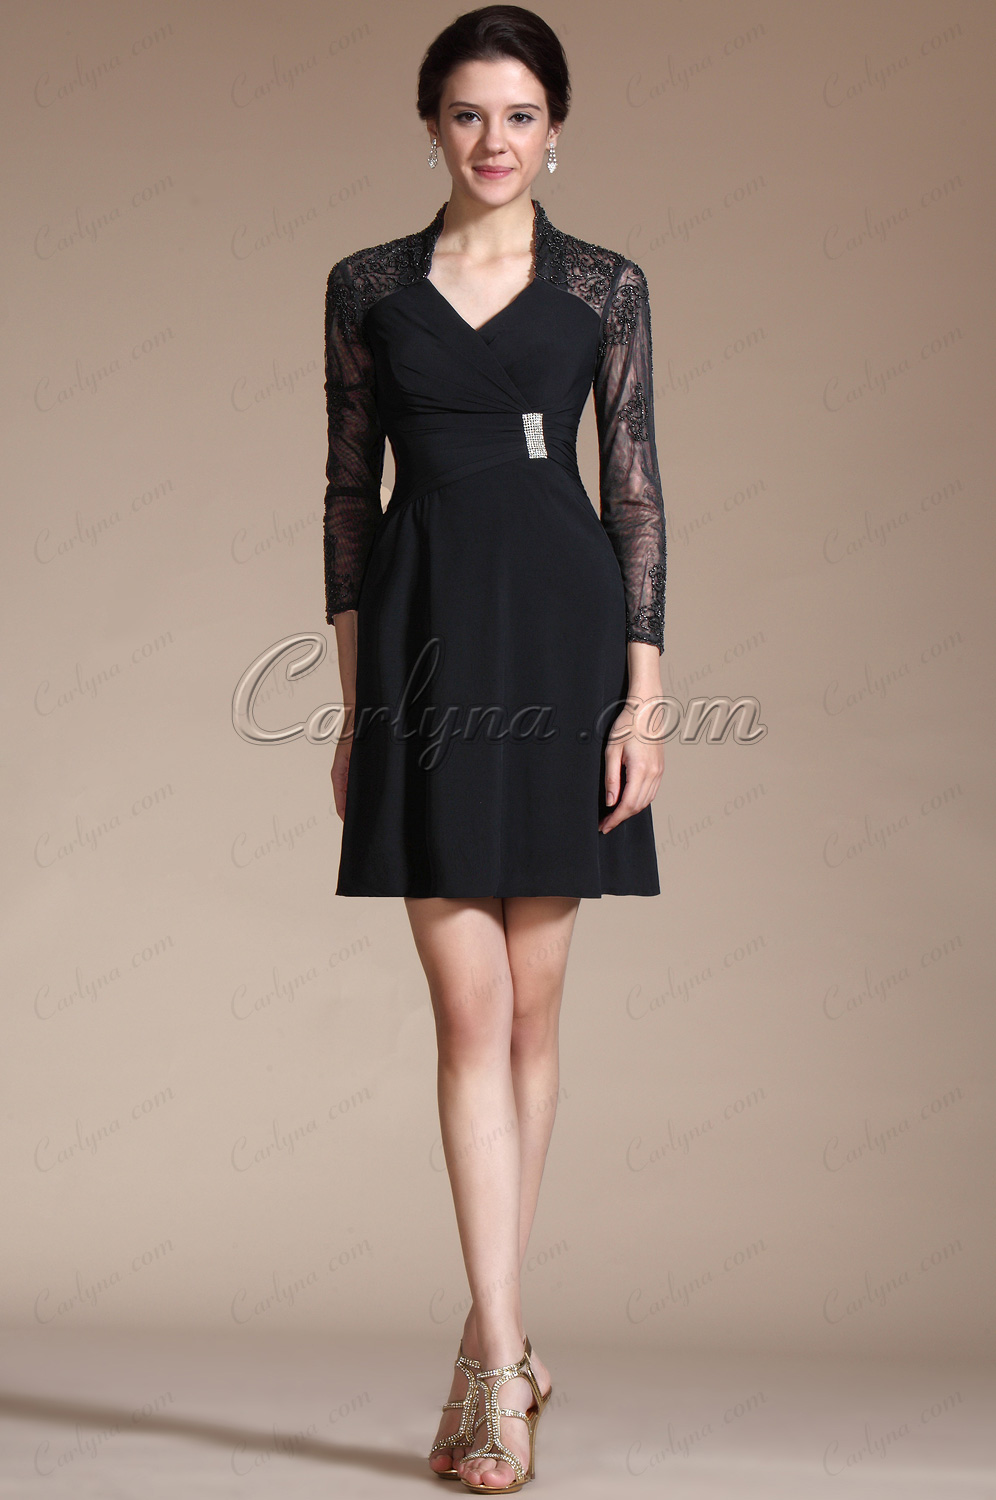 Carlyna 2014 New Black 3/4 Sleeves V-cut Cocktail Dress/Mother of the Bride Dress (C35140100)